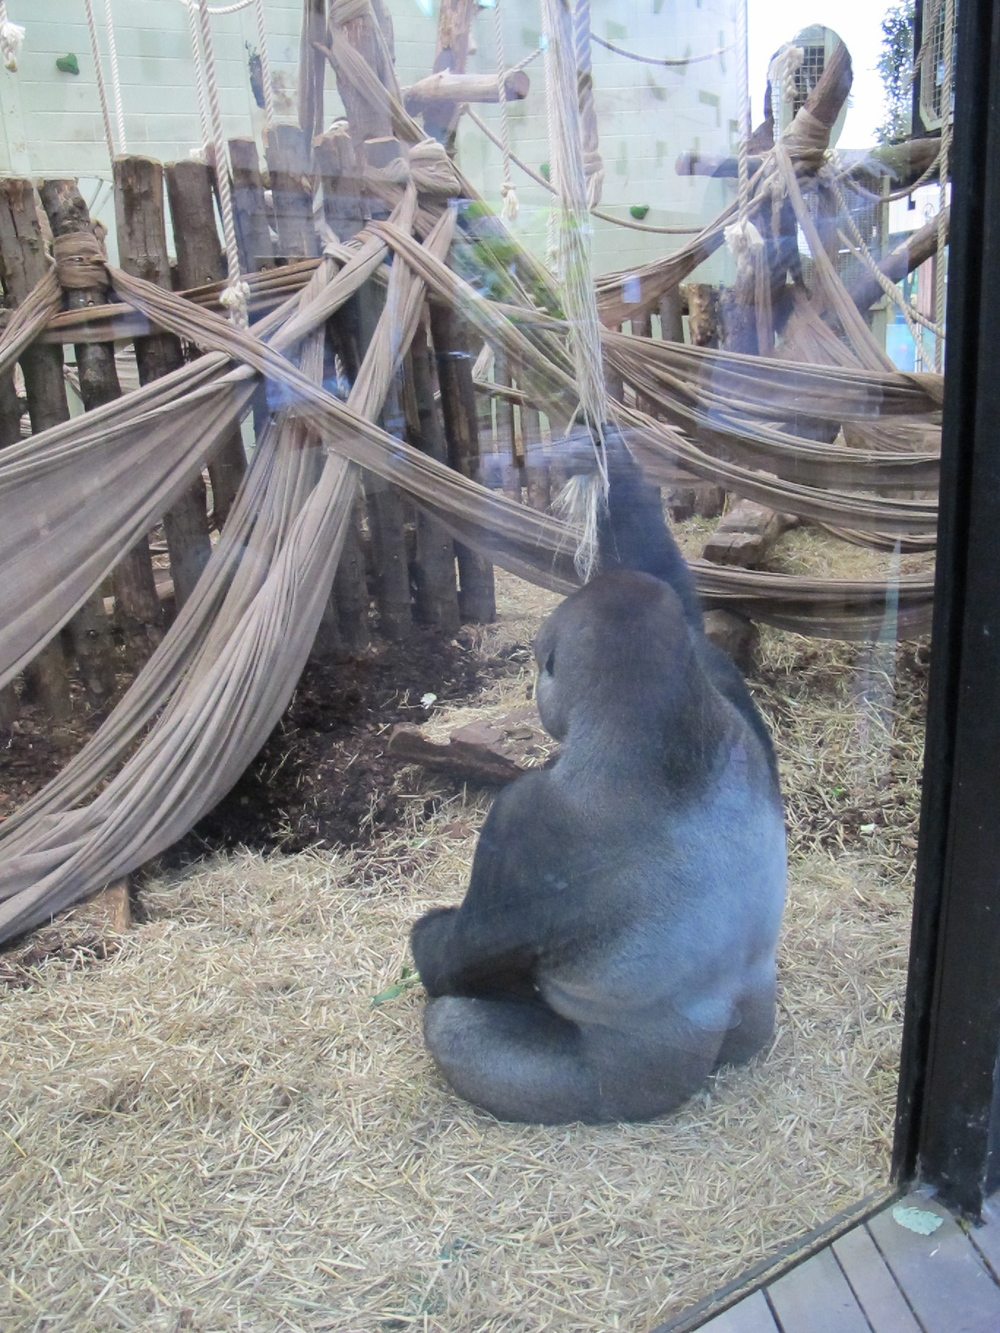 The zoo is part of an international breeding program for western lowlands gorillas like this contemplative character, who seemed to yearn for something more than the climbing ropes and sheets at his glassed-in home.